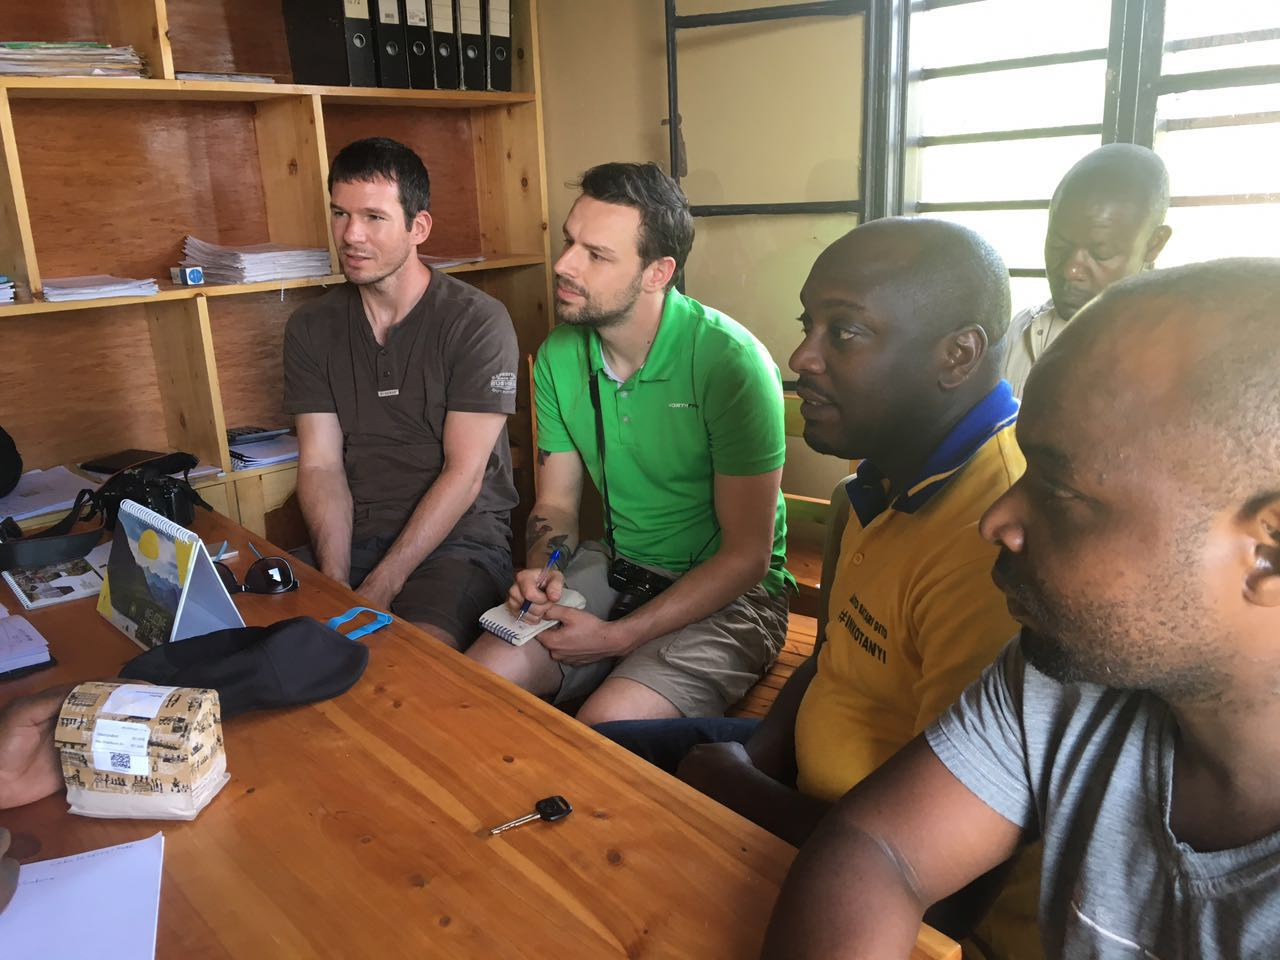 Roasters from Doubleshot visited Coko in early 2016.